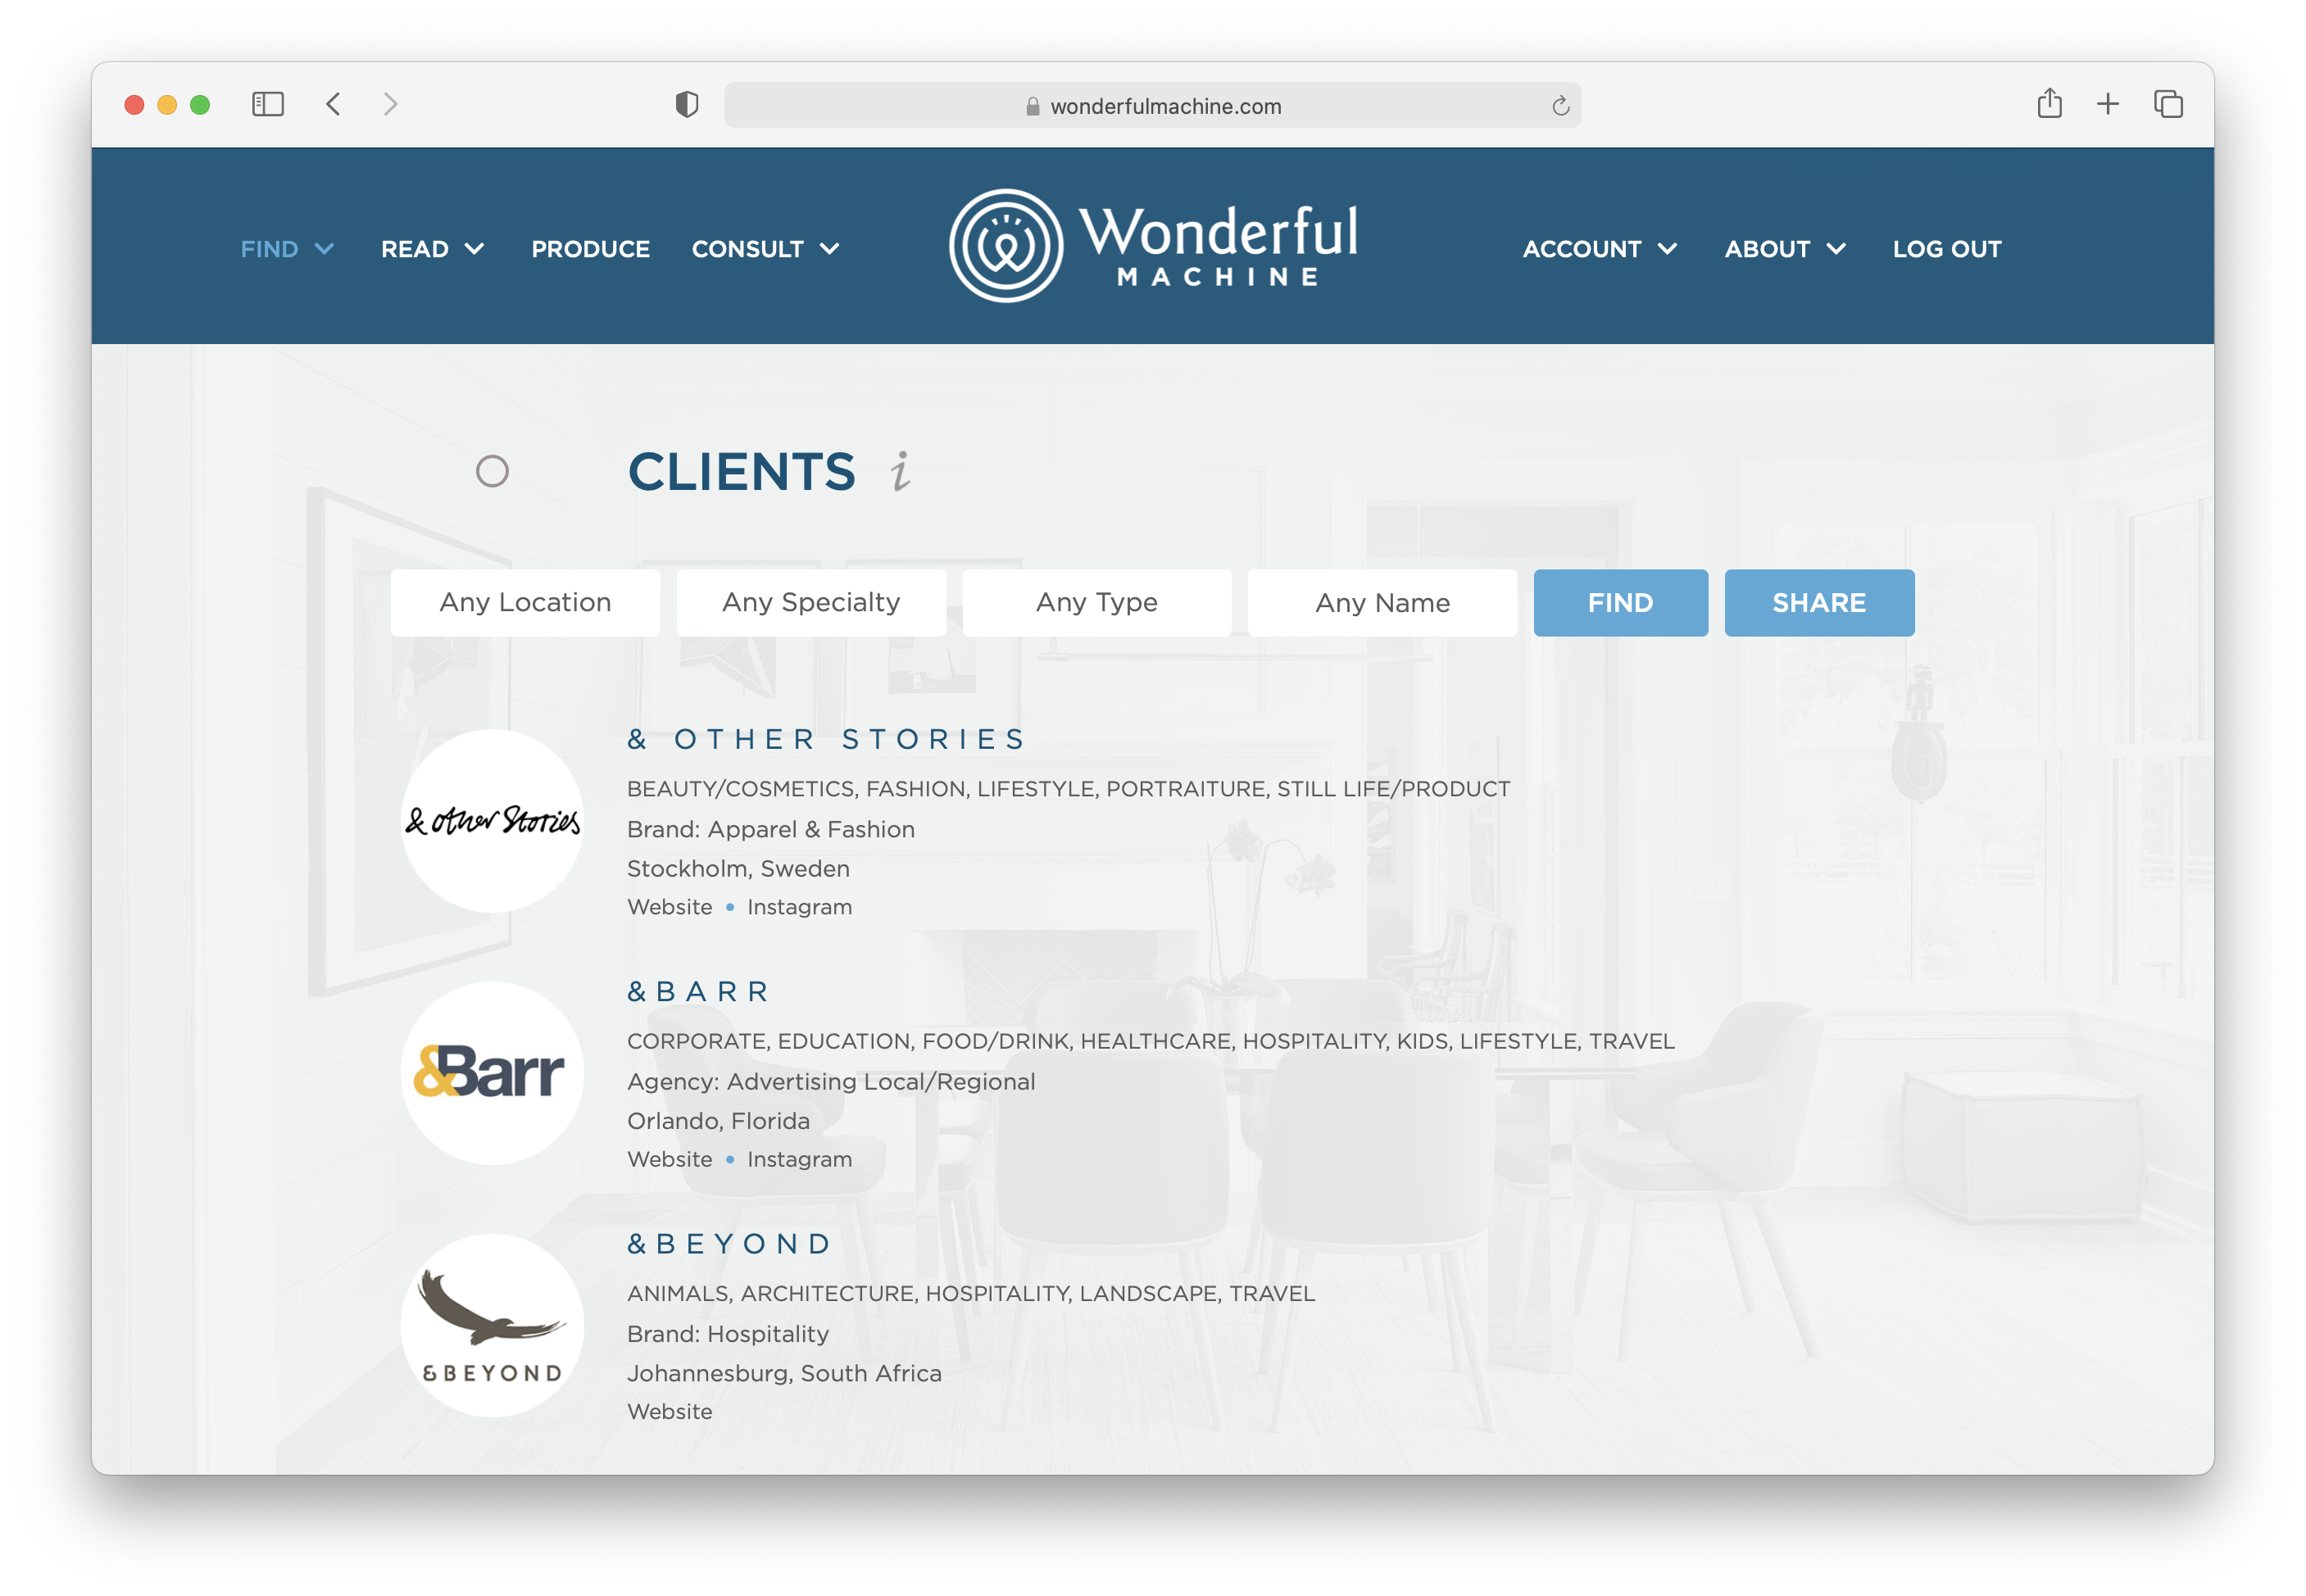 Wonderful Machine screenshot of our Find Clients page